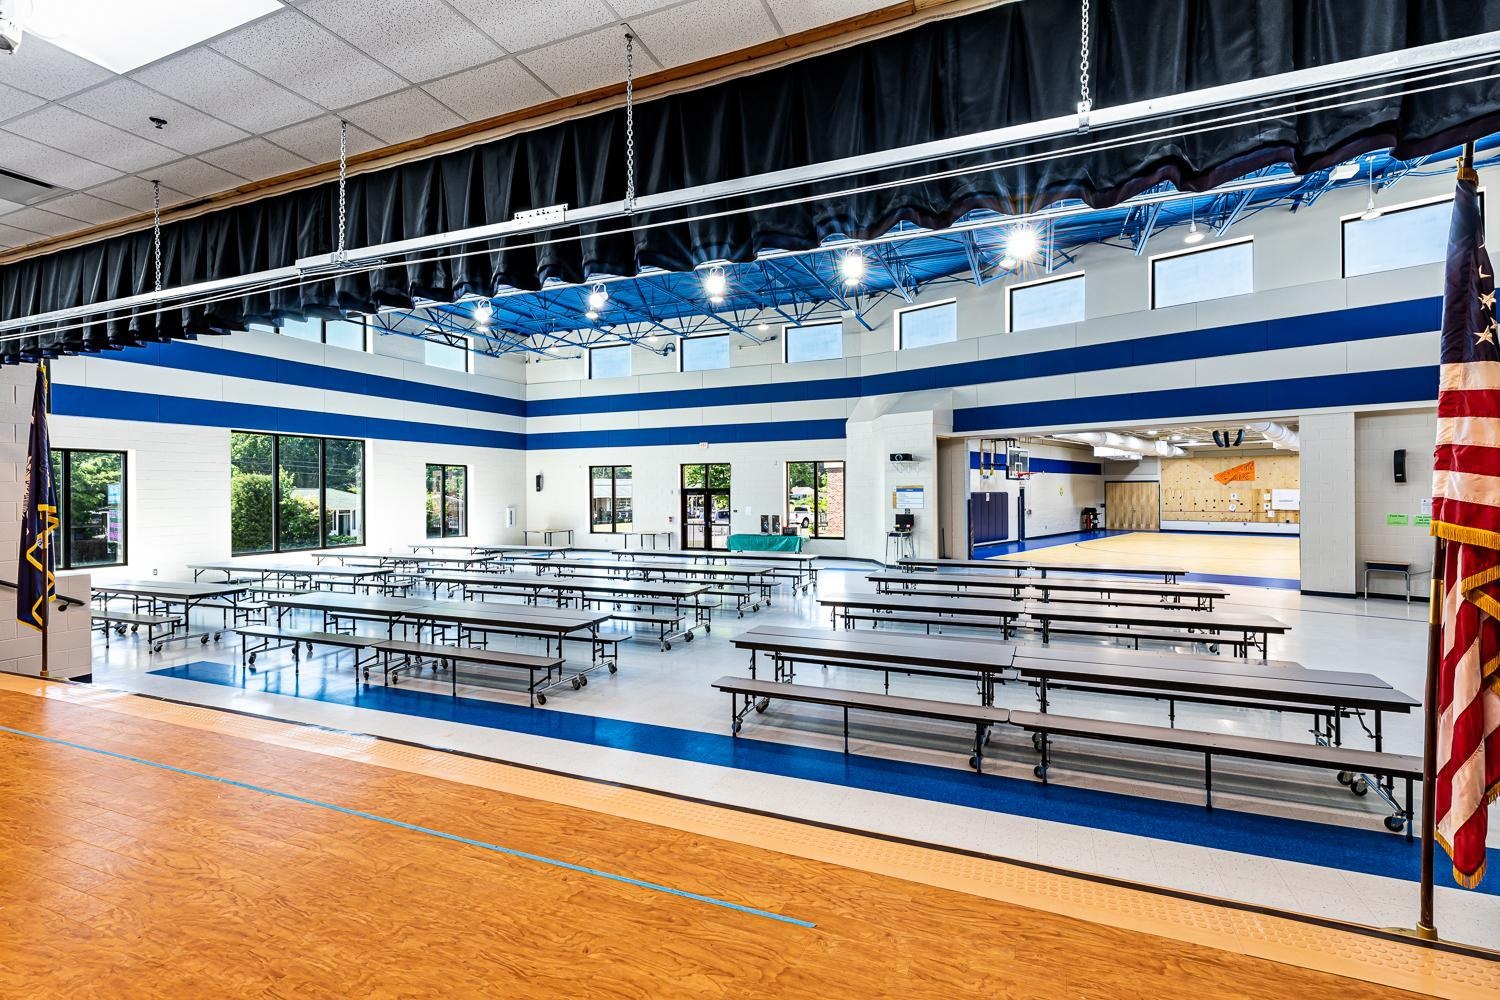 View of New Cafetorium and Gym; photo taken from the stage